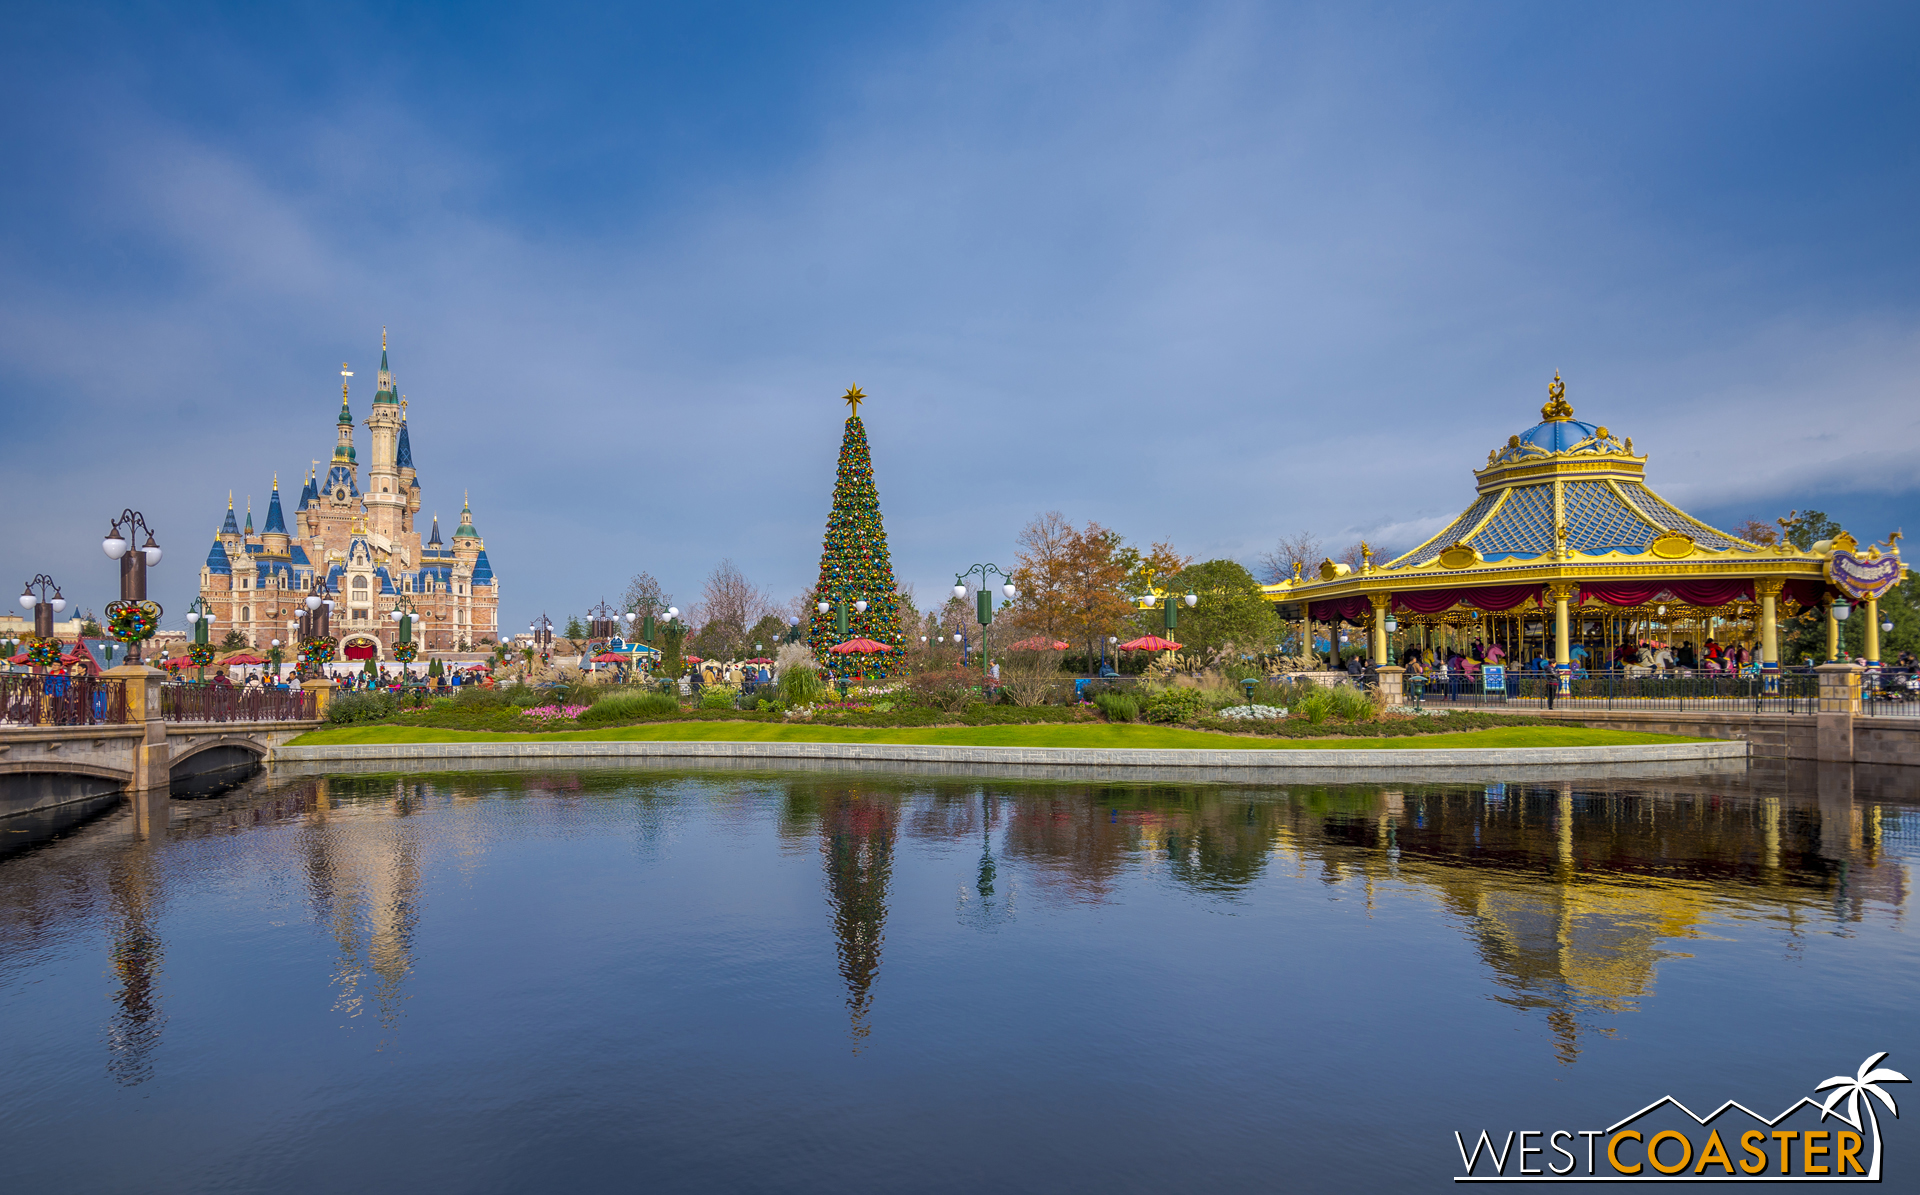 Left to right, the Enchanted Storybook Castle, a towering Christmas tree, and the Fantasia Carousel mark a skyline of sorts in the Gardens of Imagination.